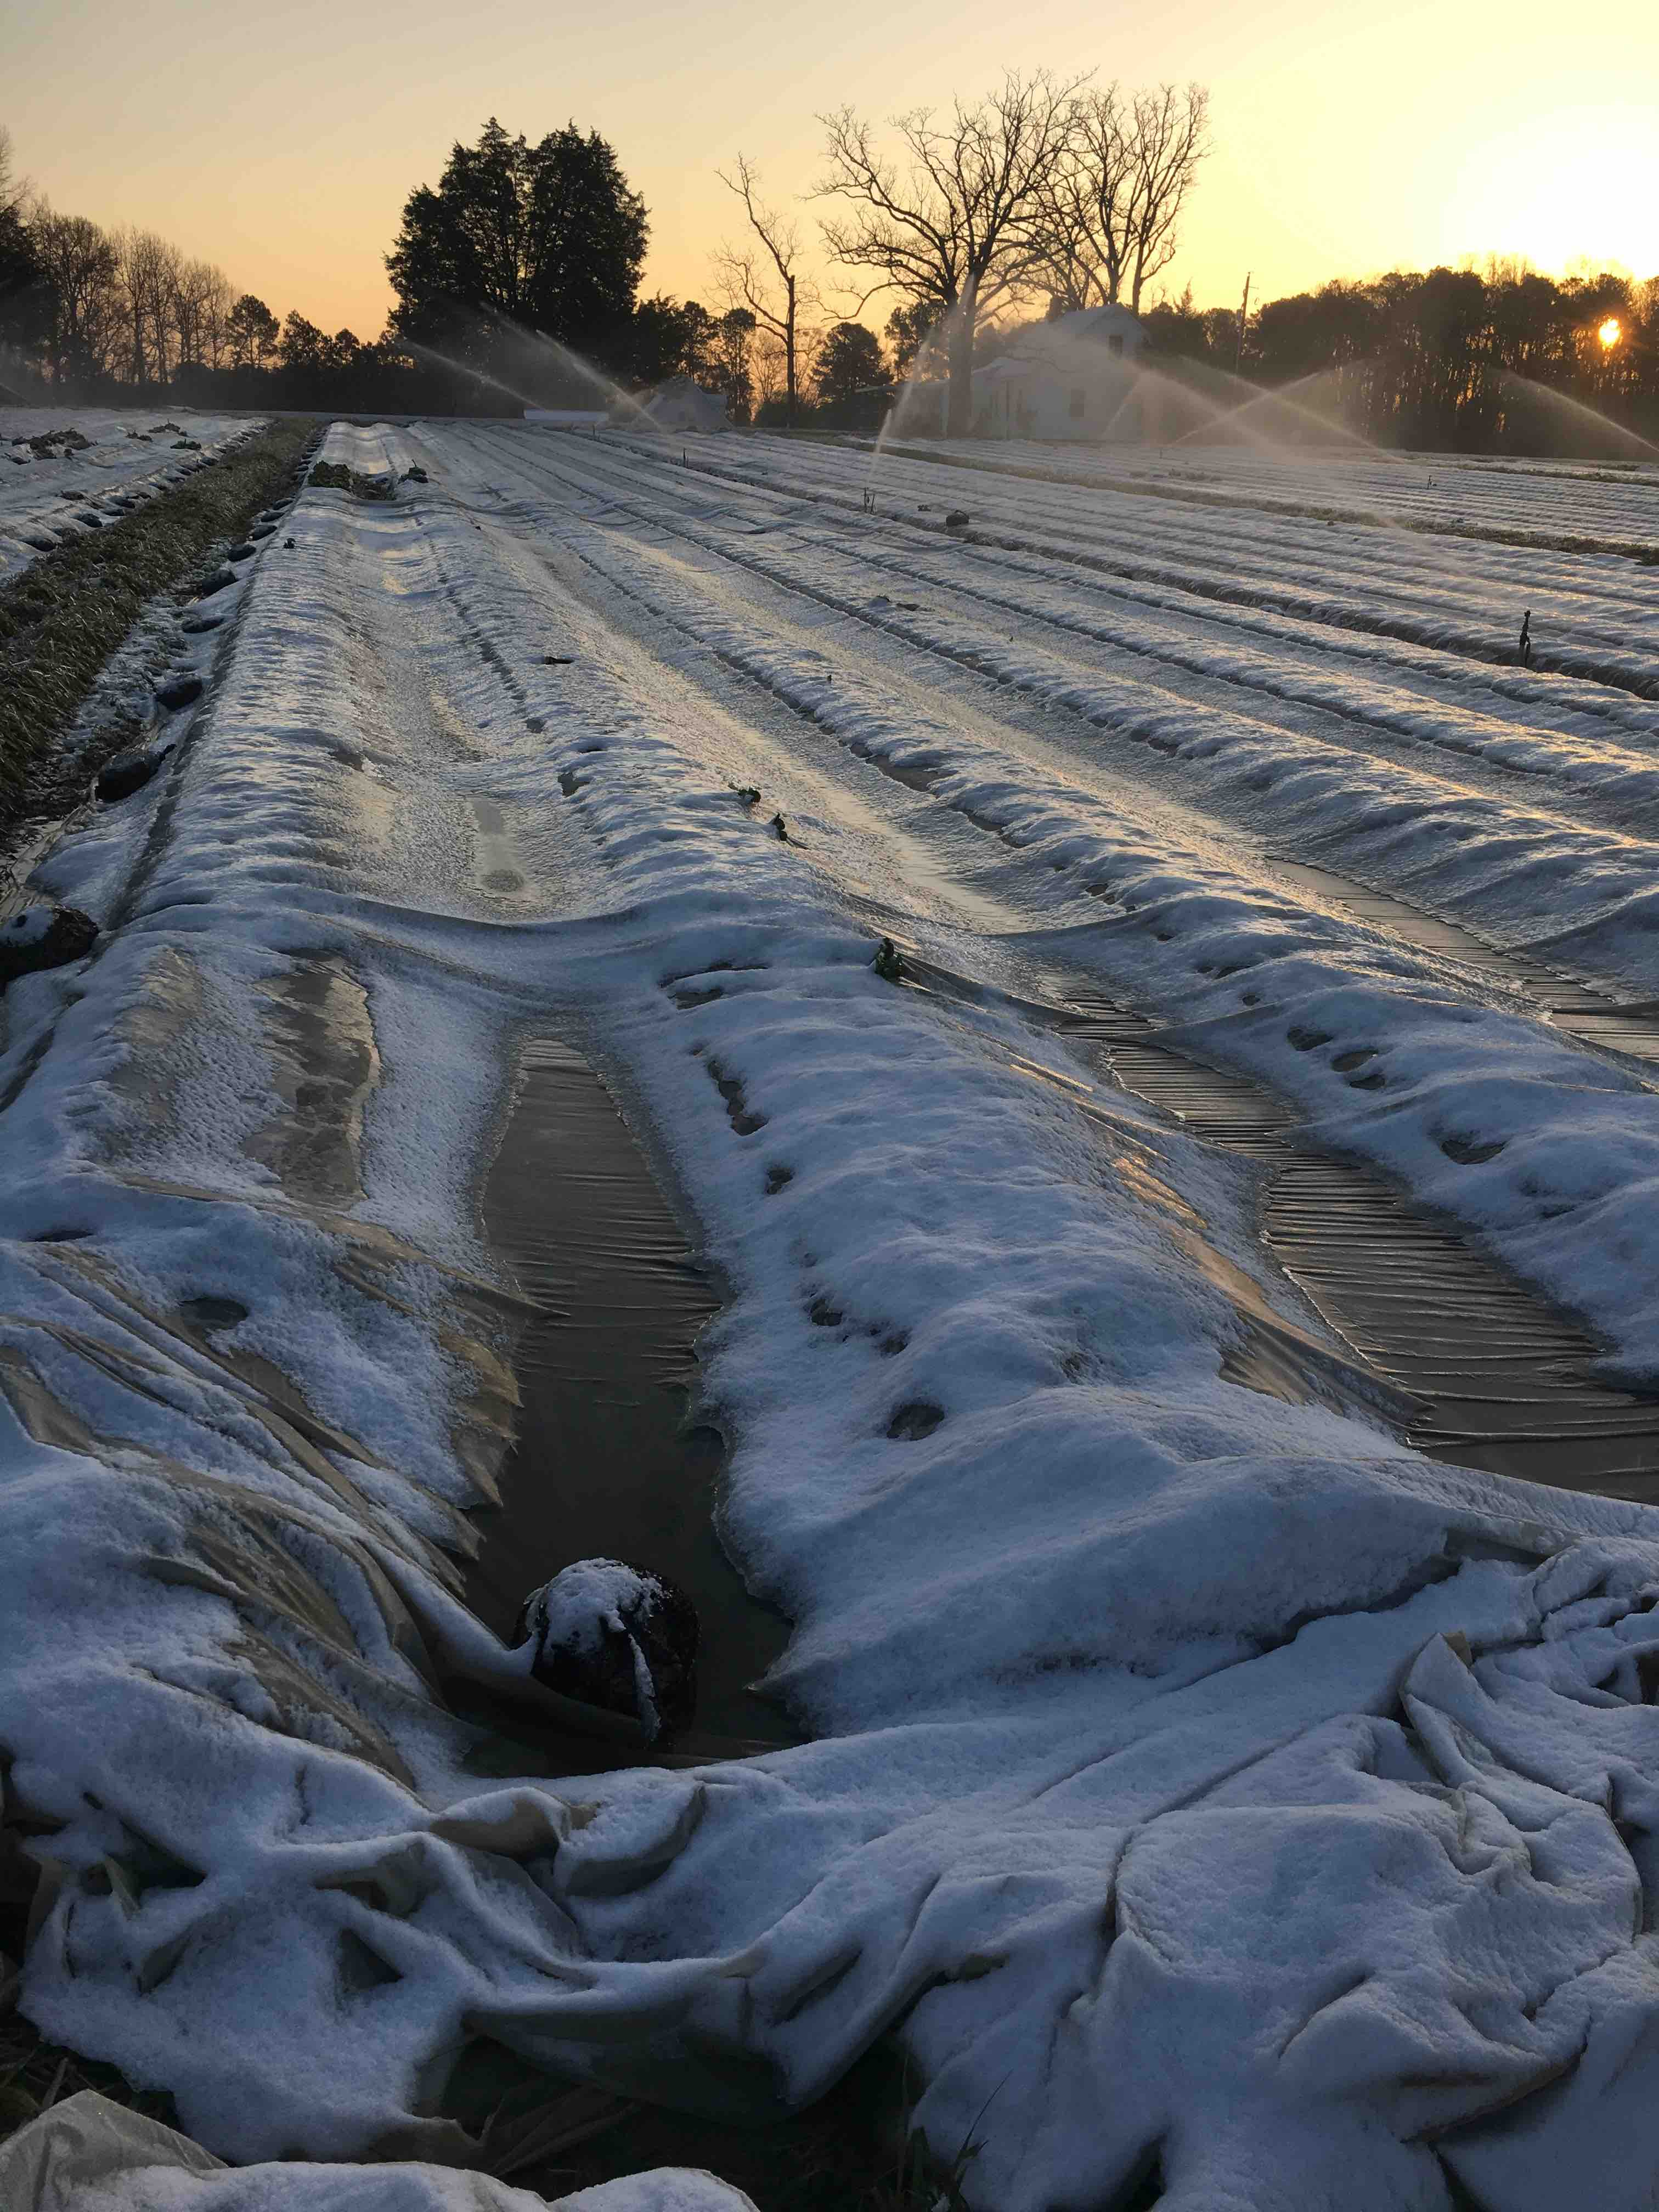 snow on covered rows